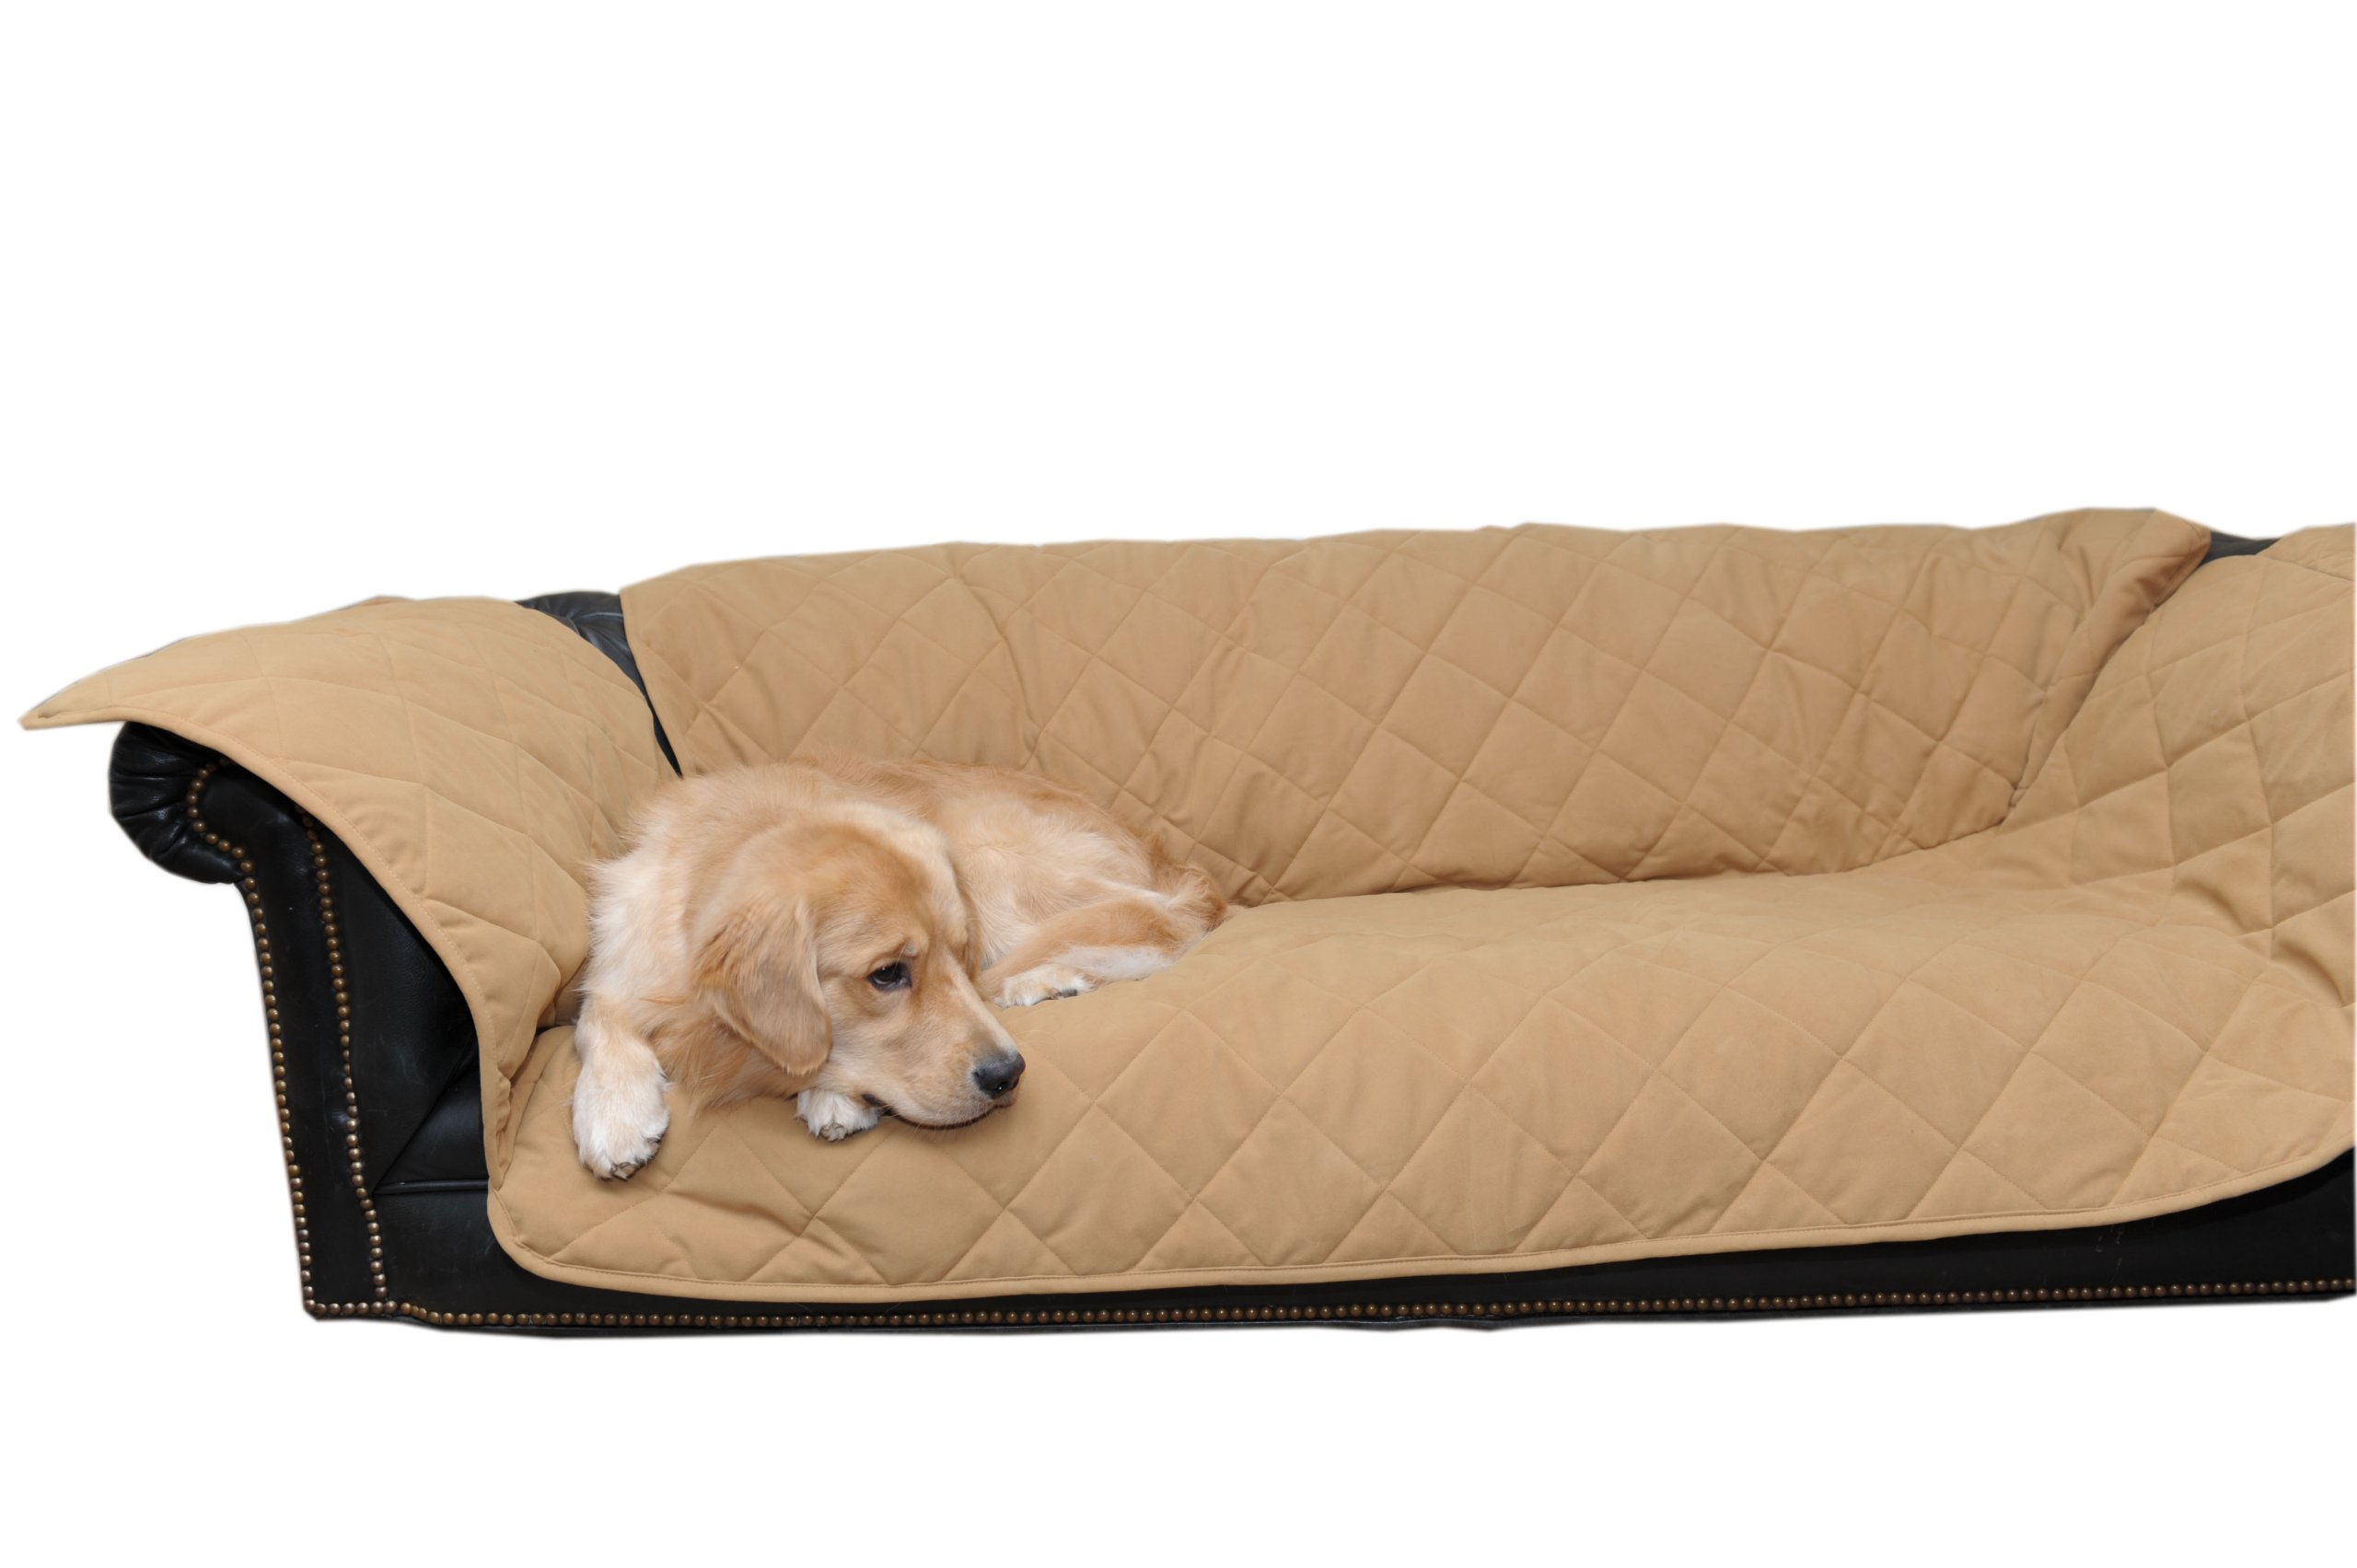 CPC Diamond Quilted Couch Protector for Dogs and Cats, 72 x 27 x 34-Inch, Caramel